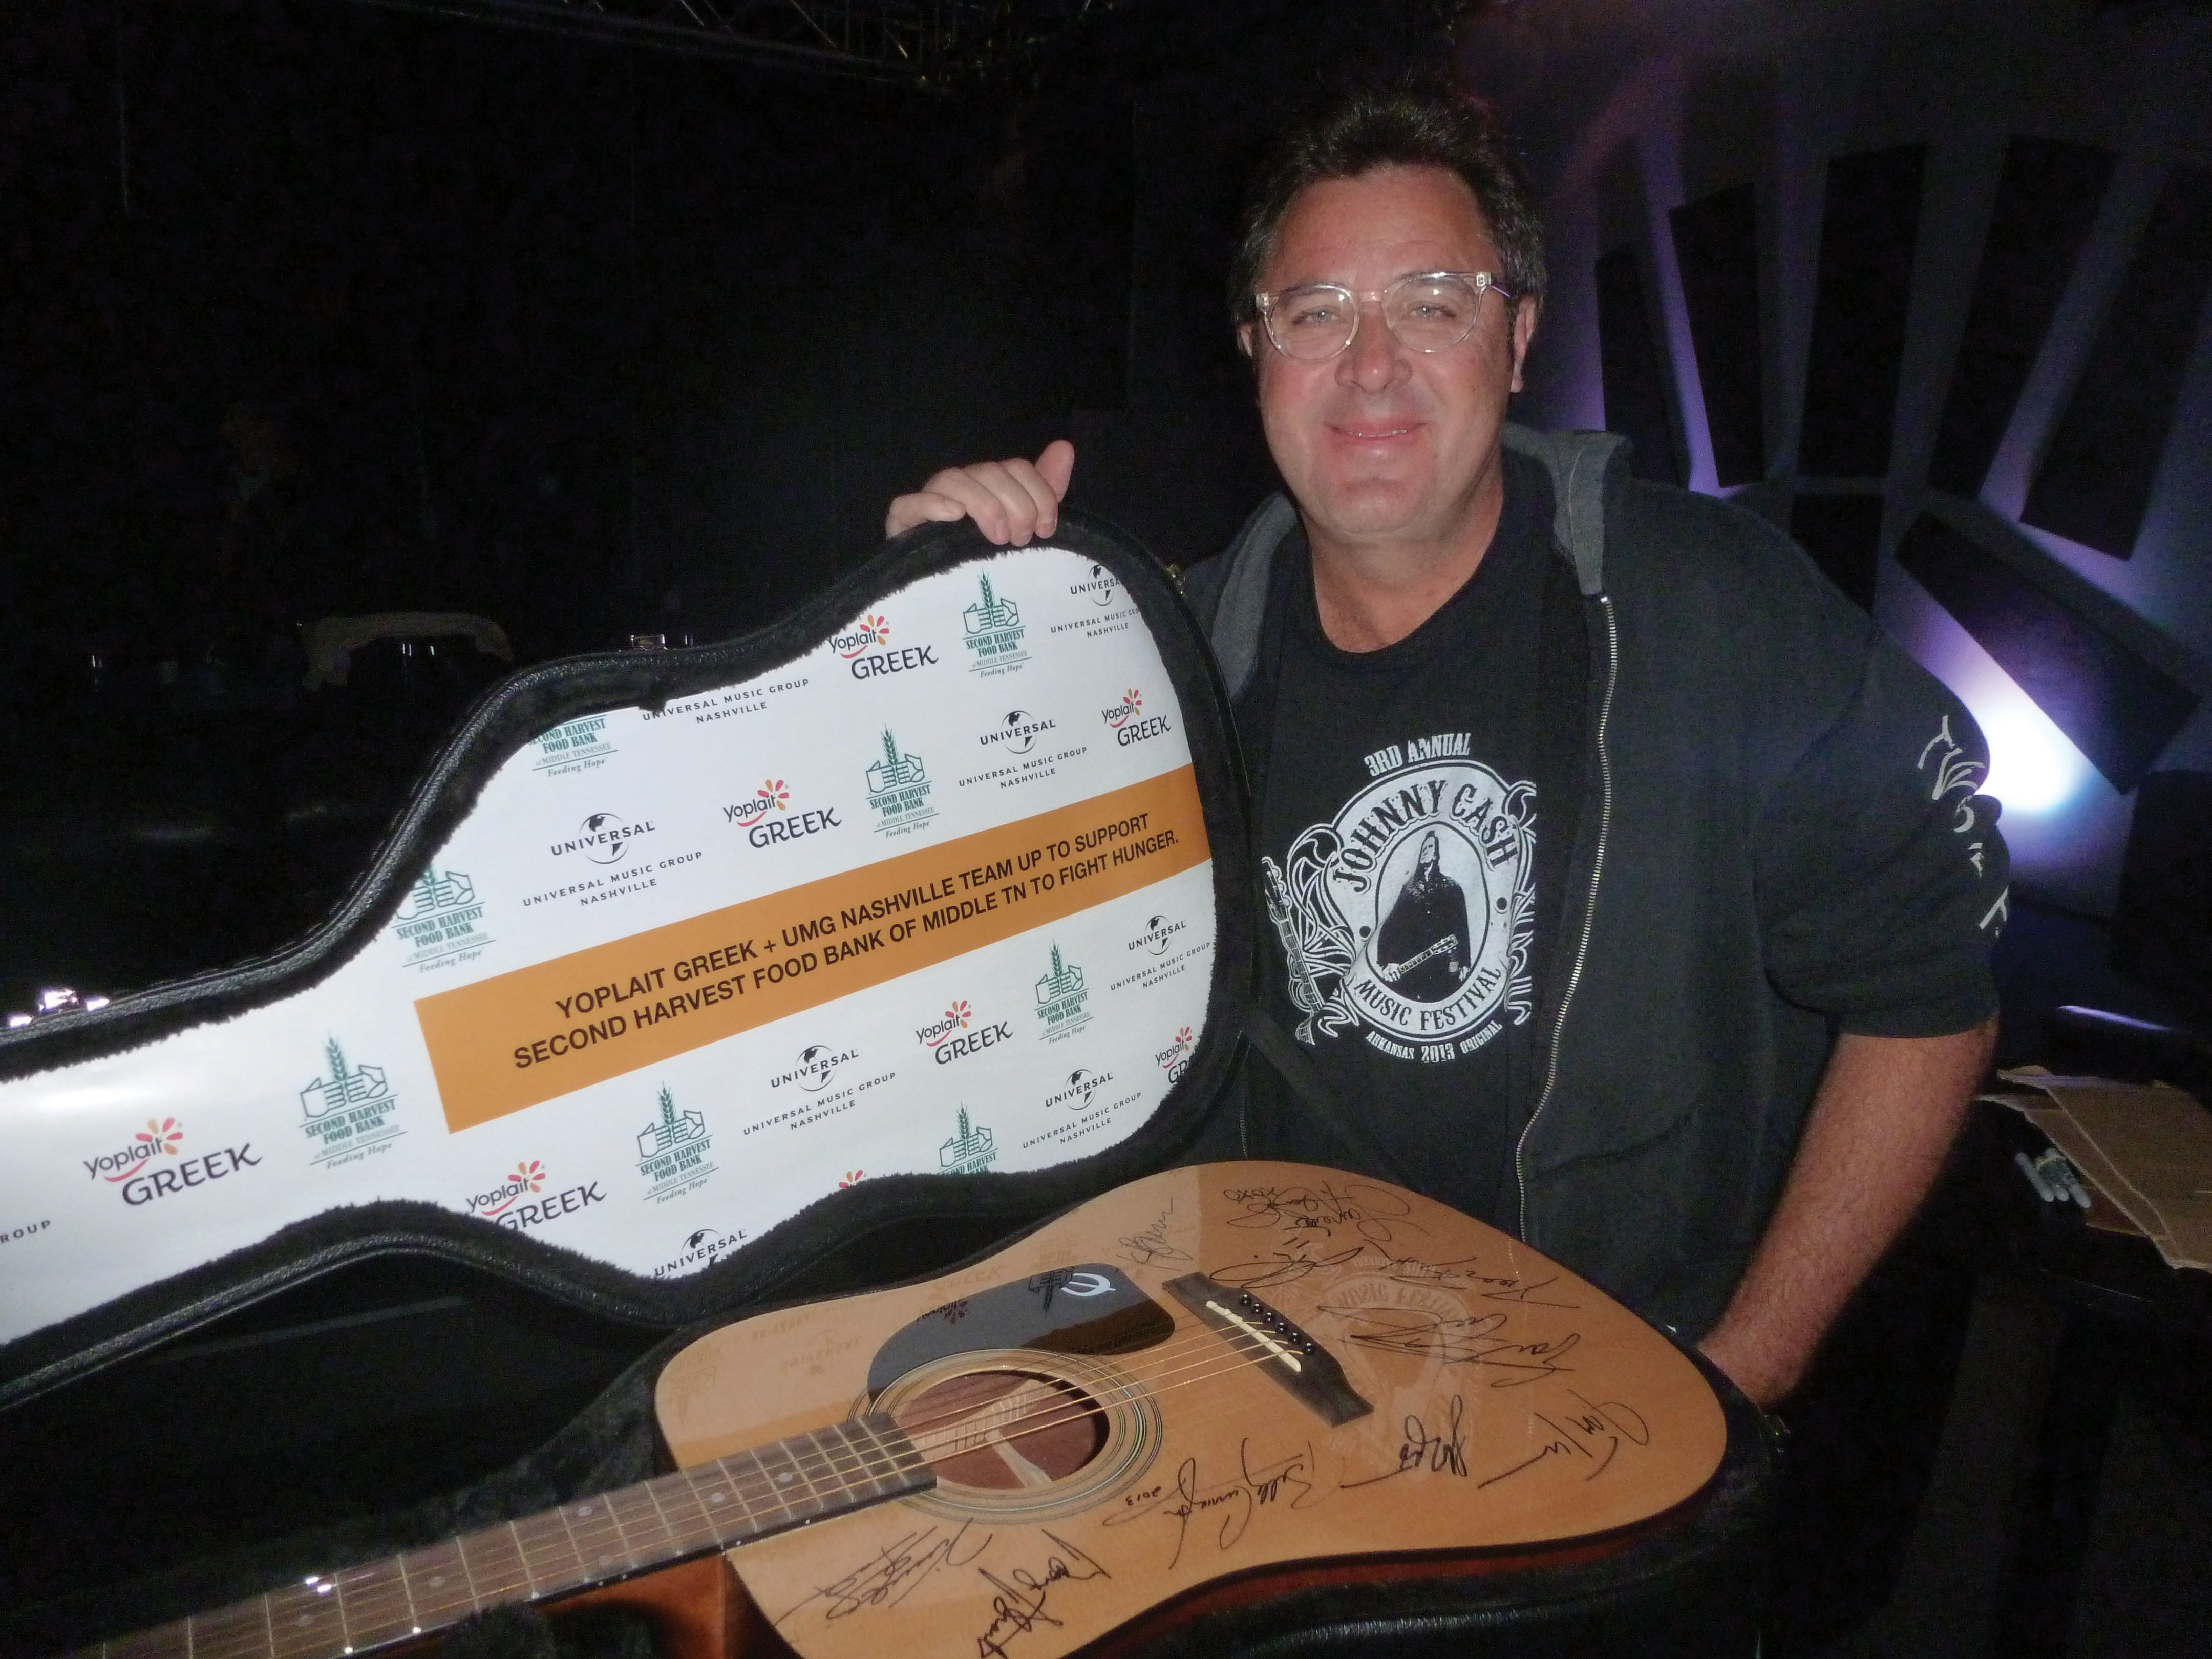 Vince Gill - Yoplait Greek & Universal Music Group Nashville Team Up to Help Fight Hunger